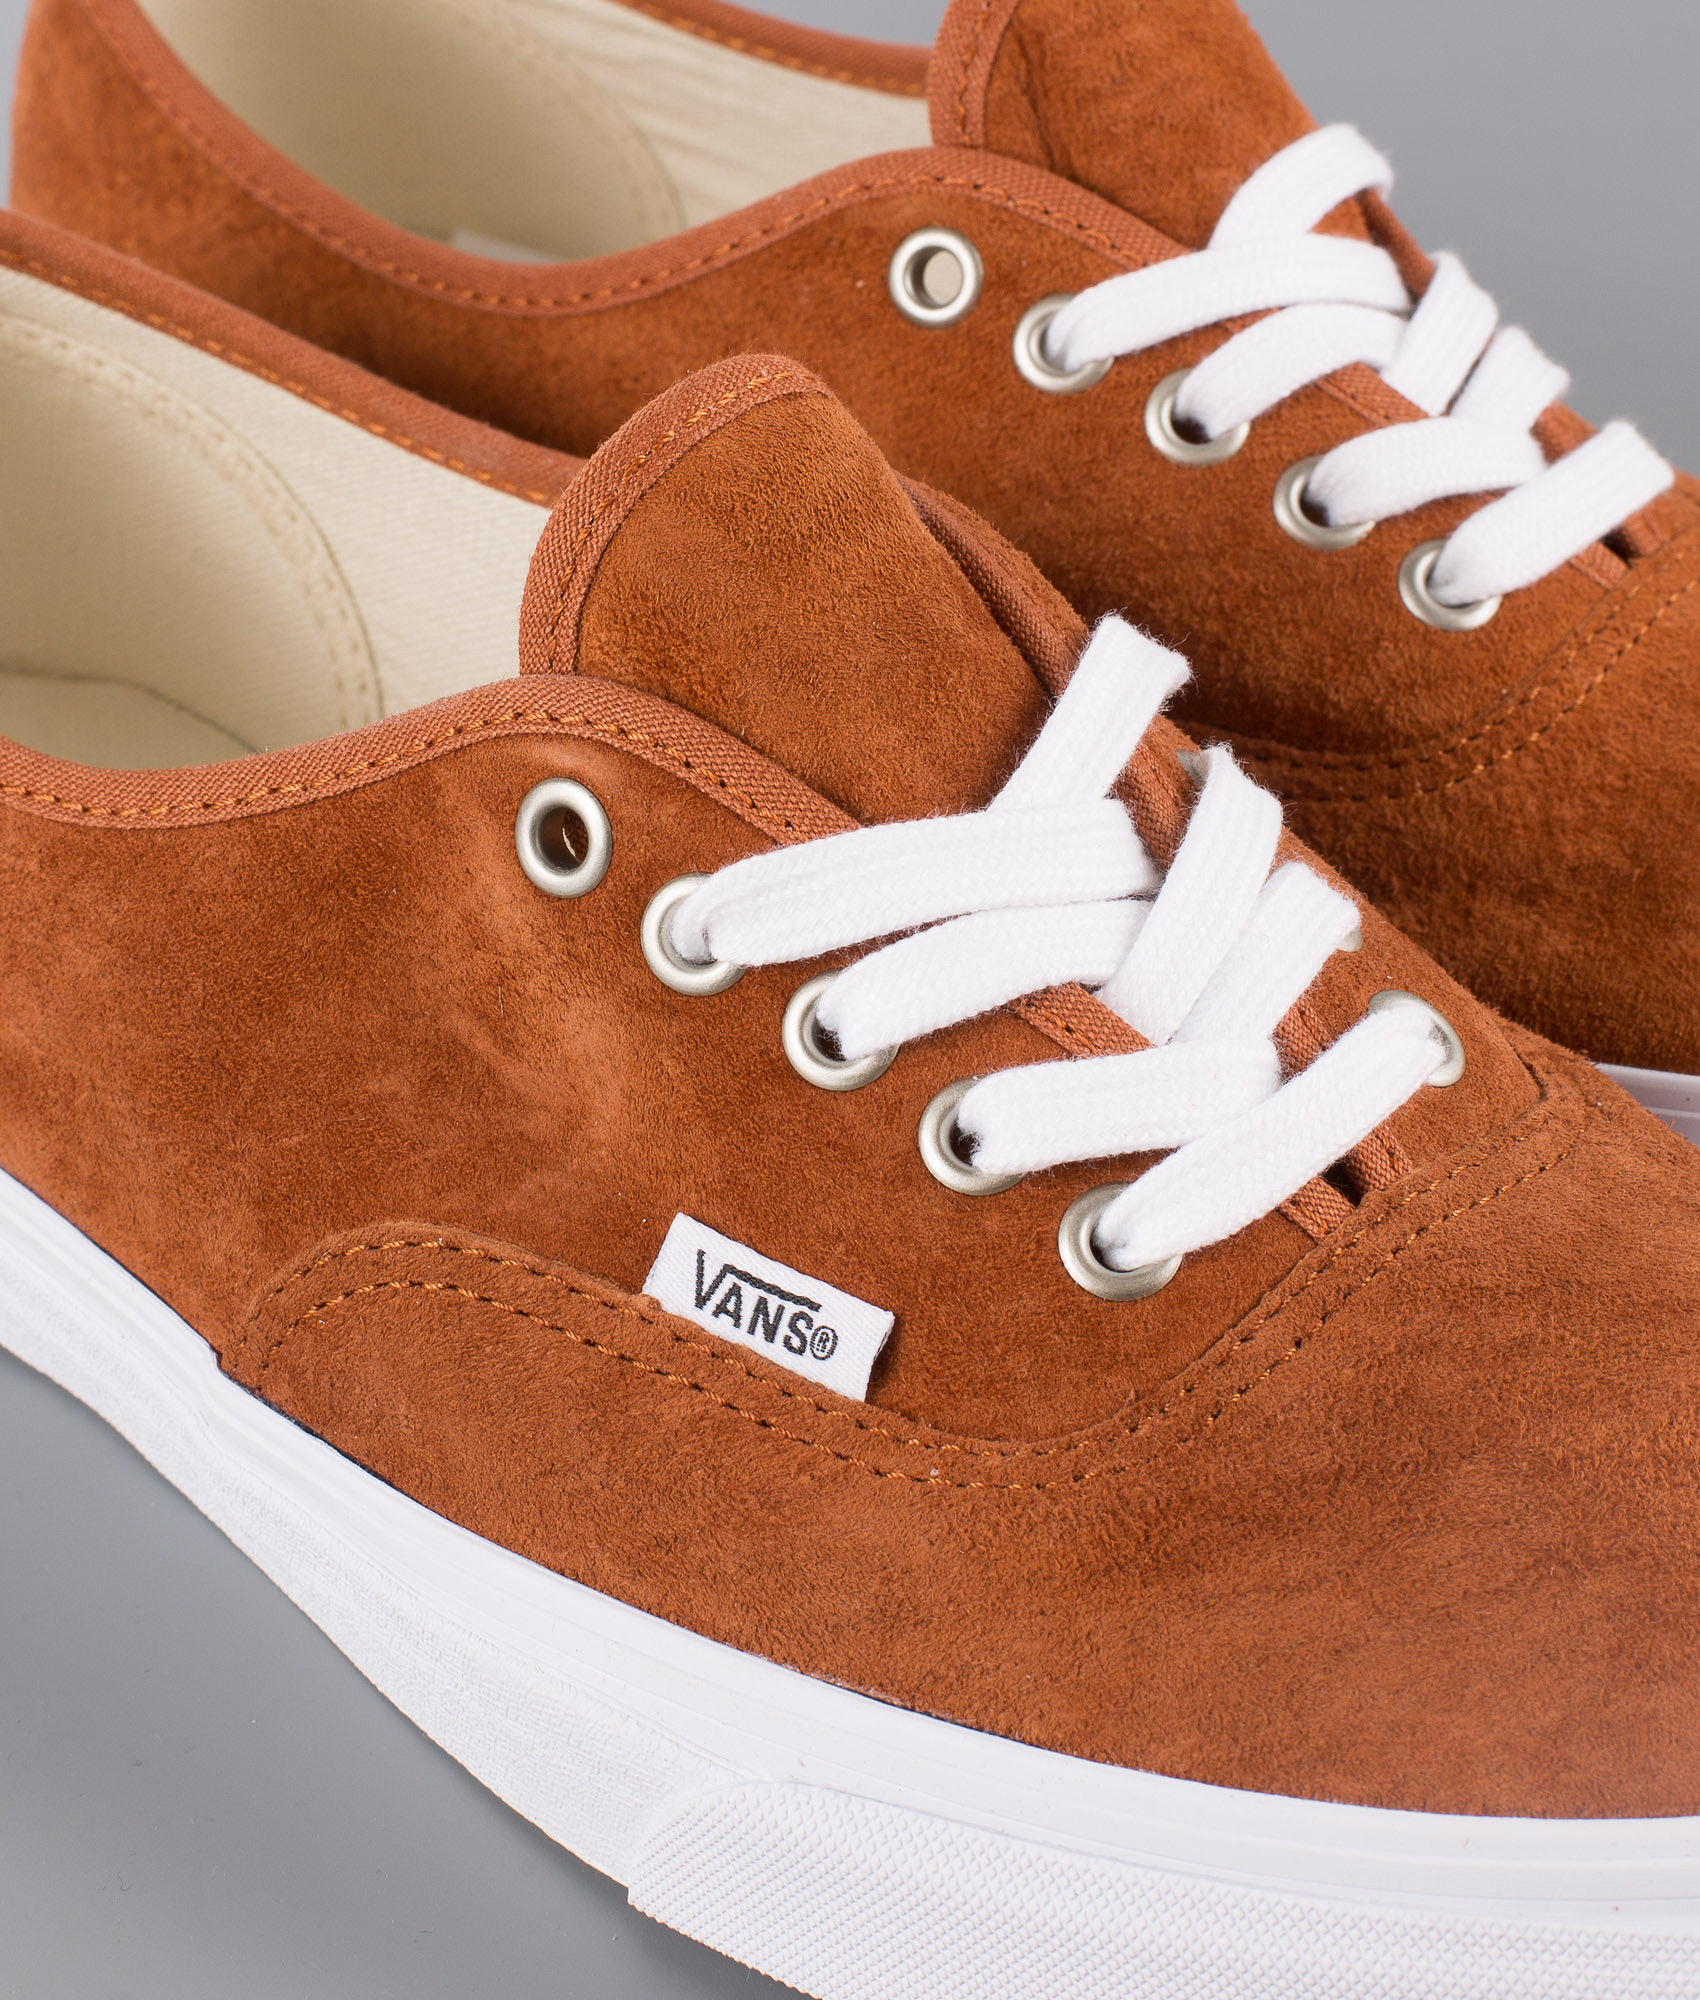 6fcfa7169403 Vans Authentic Shoes (Pig Suede) Leather Brown True White ...